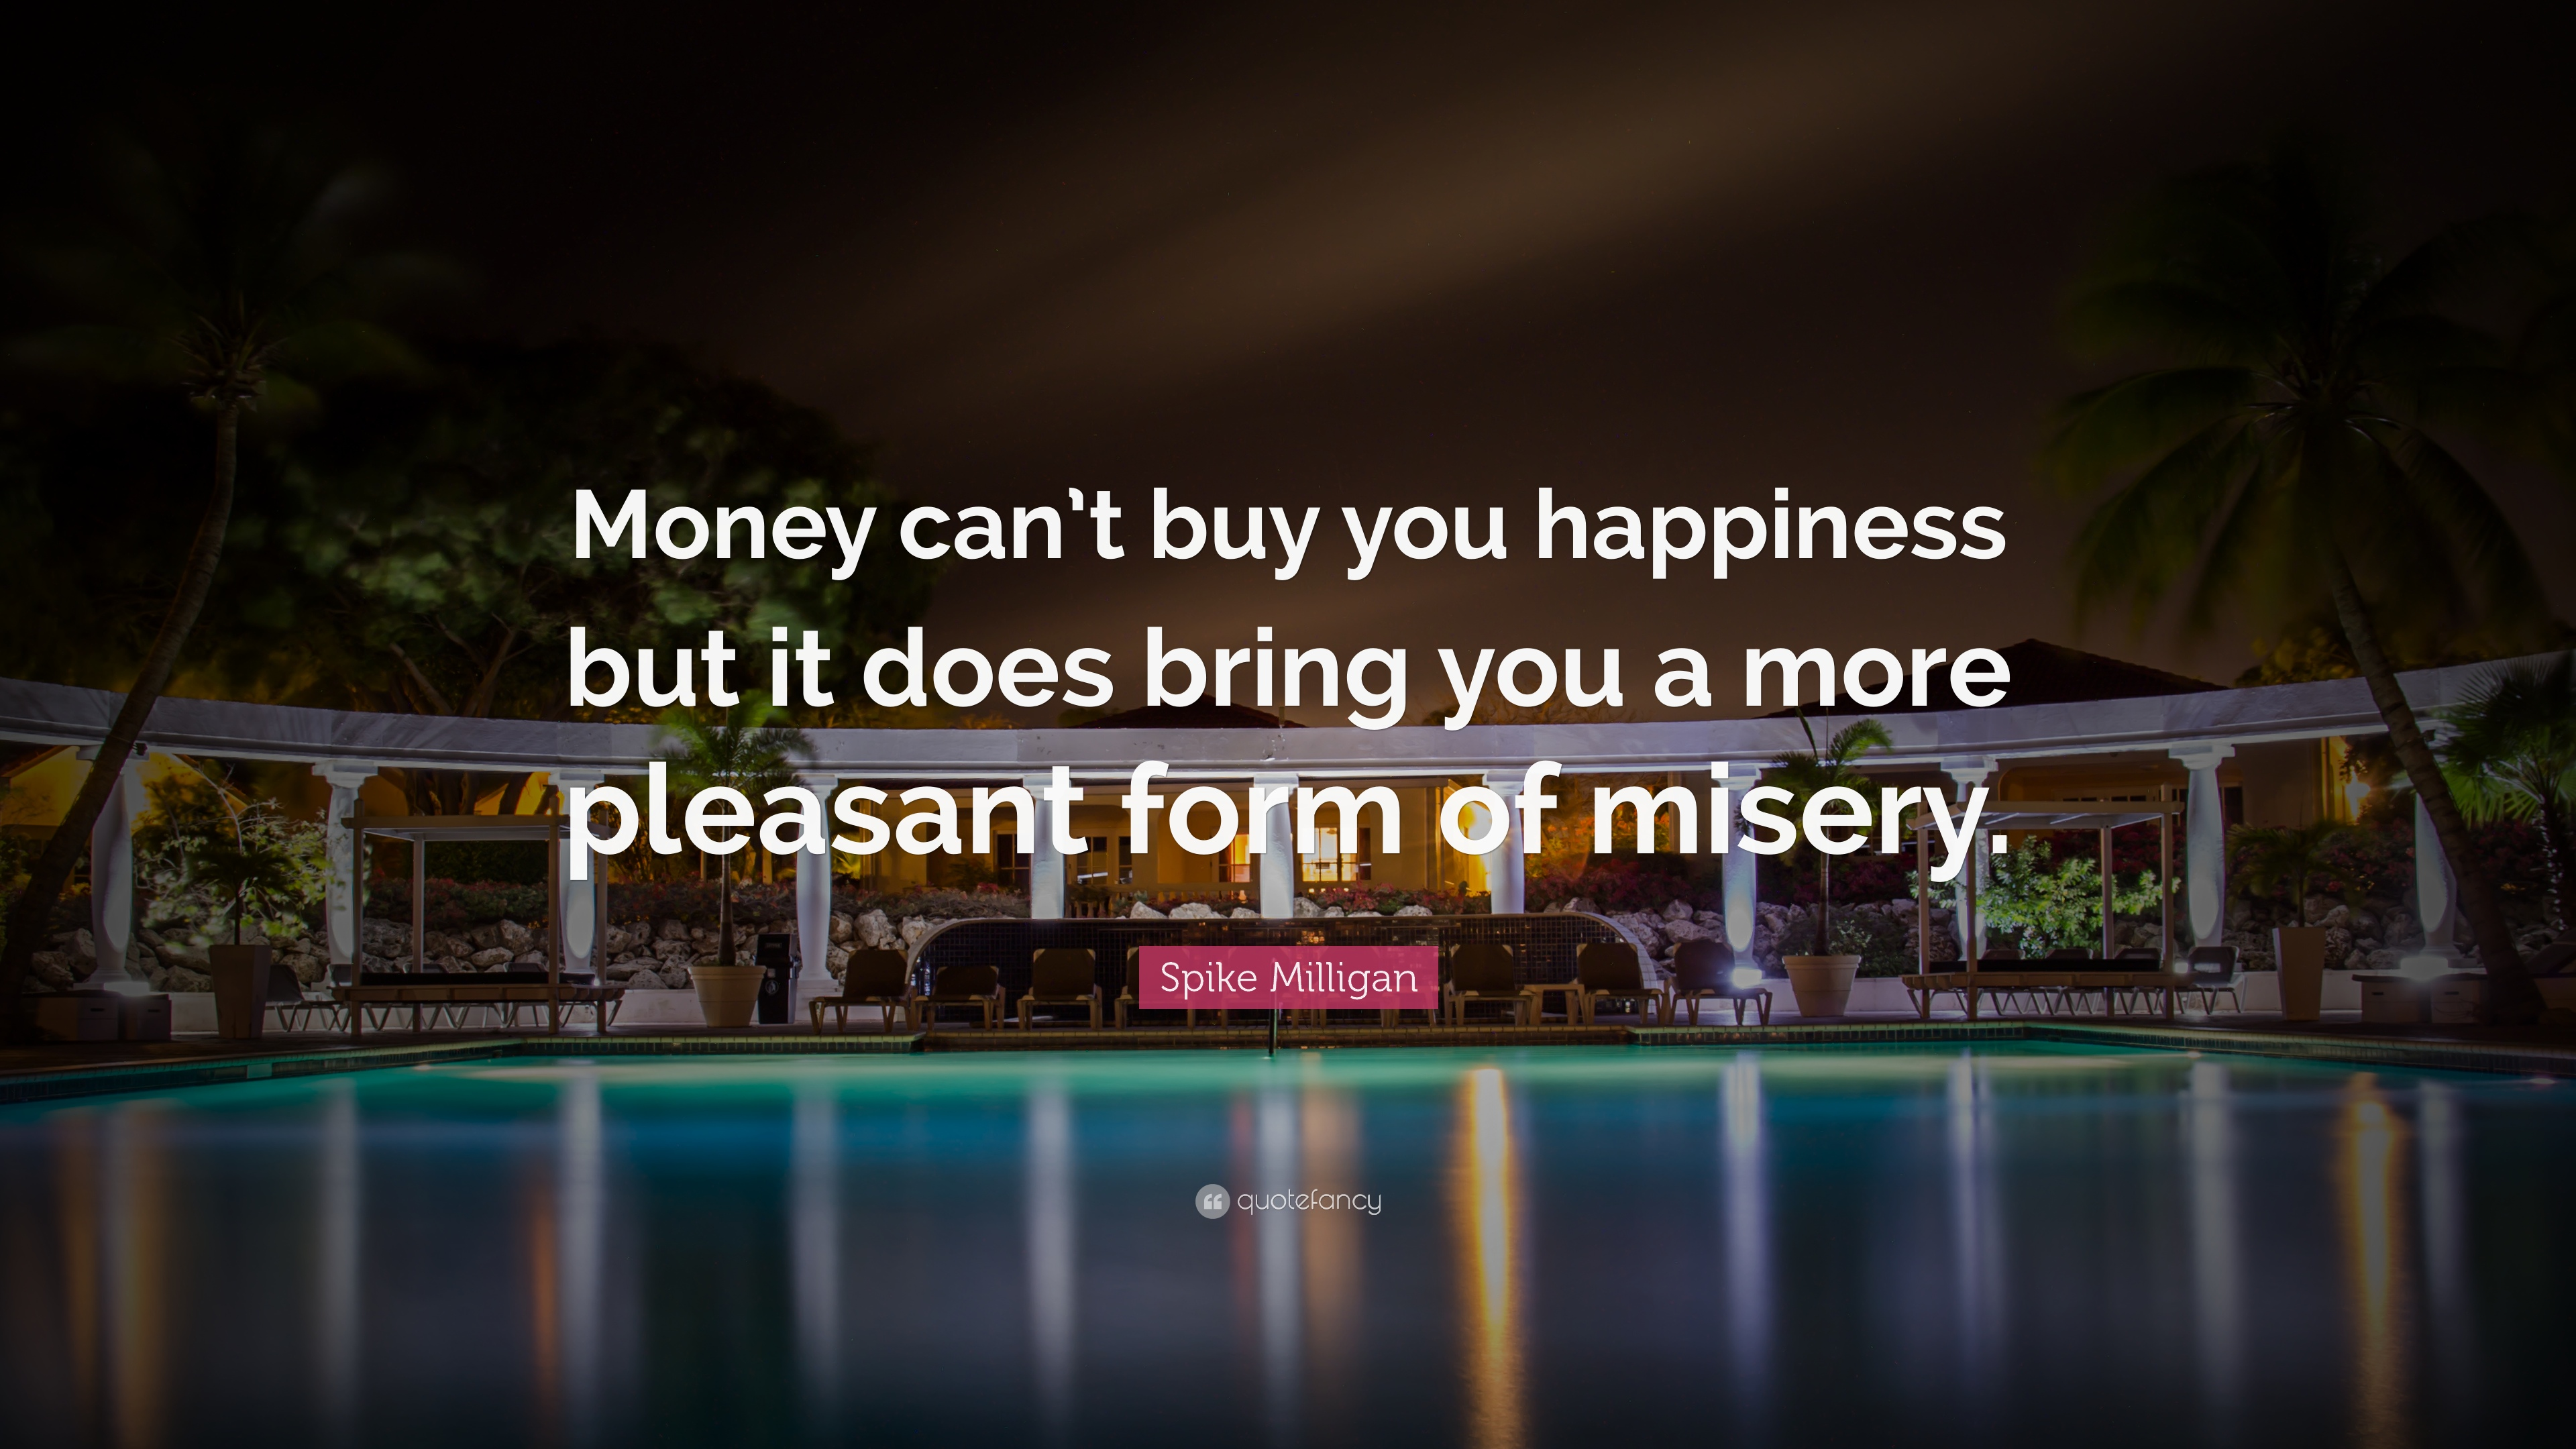 Funny Quotes: U201cMoney Canu0027t Buy You Happiness But It Does Bring You